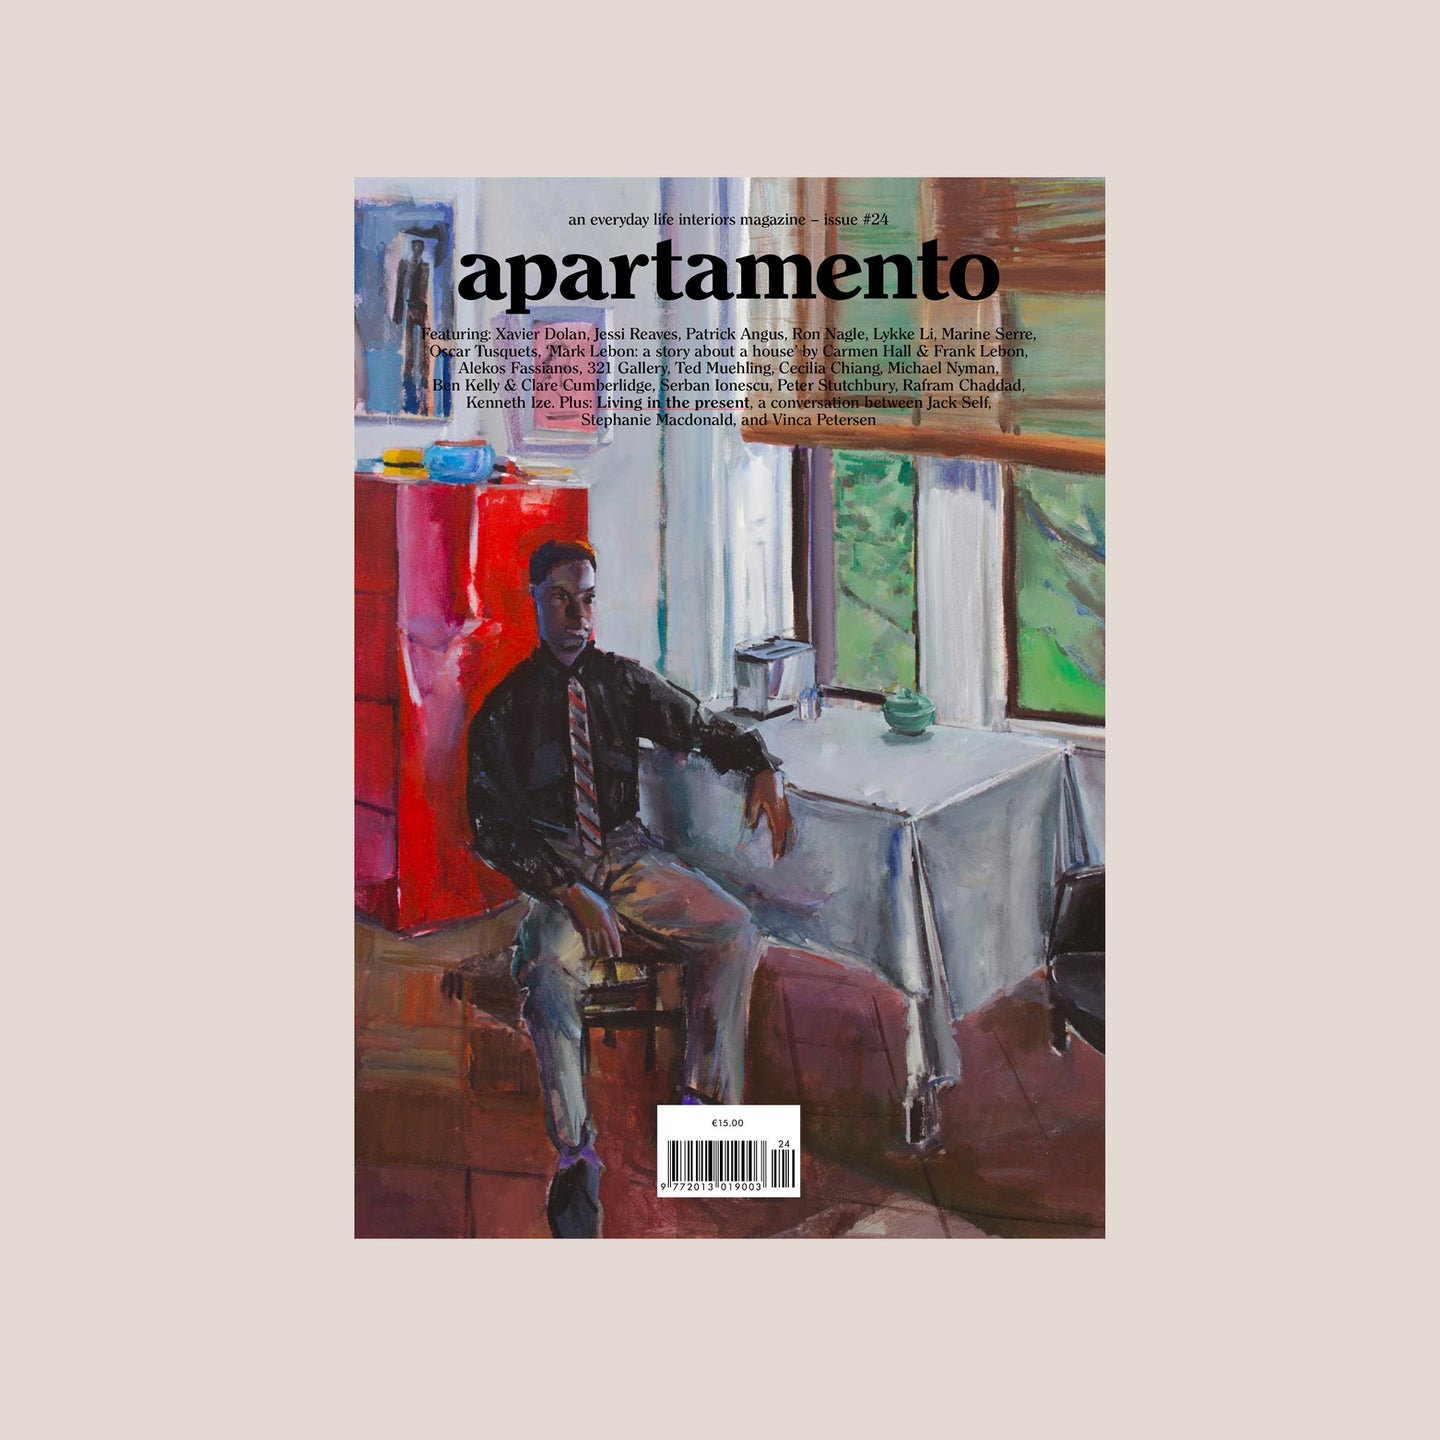 Apartamento - Issue No. 24, available at LCD.